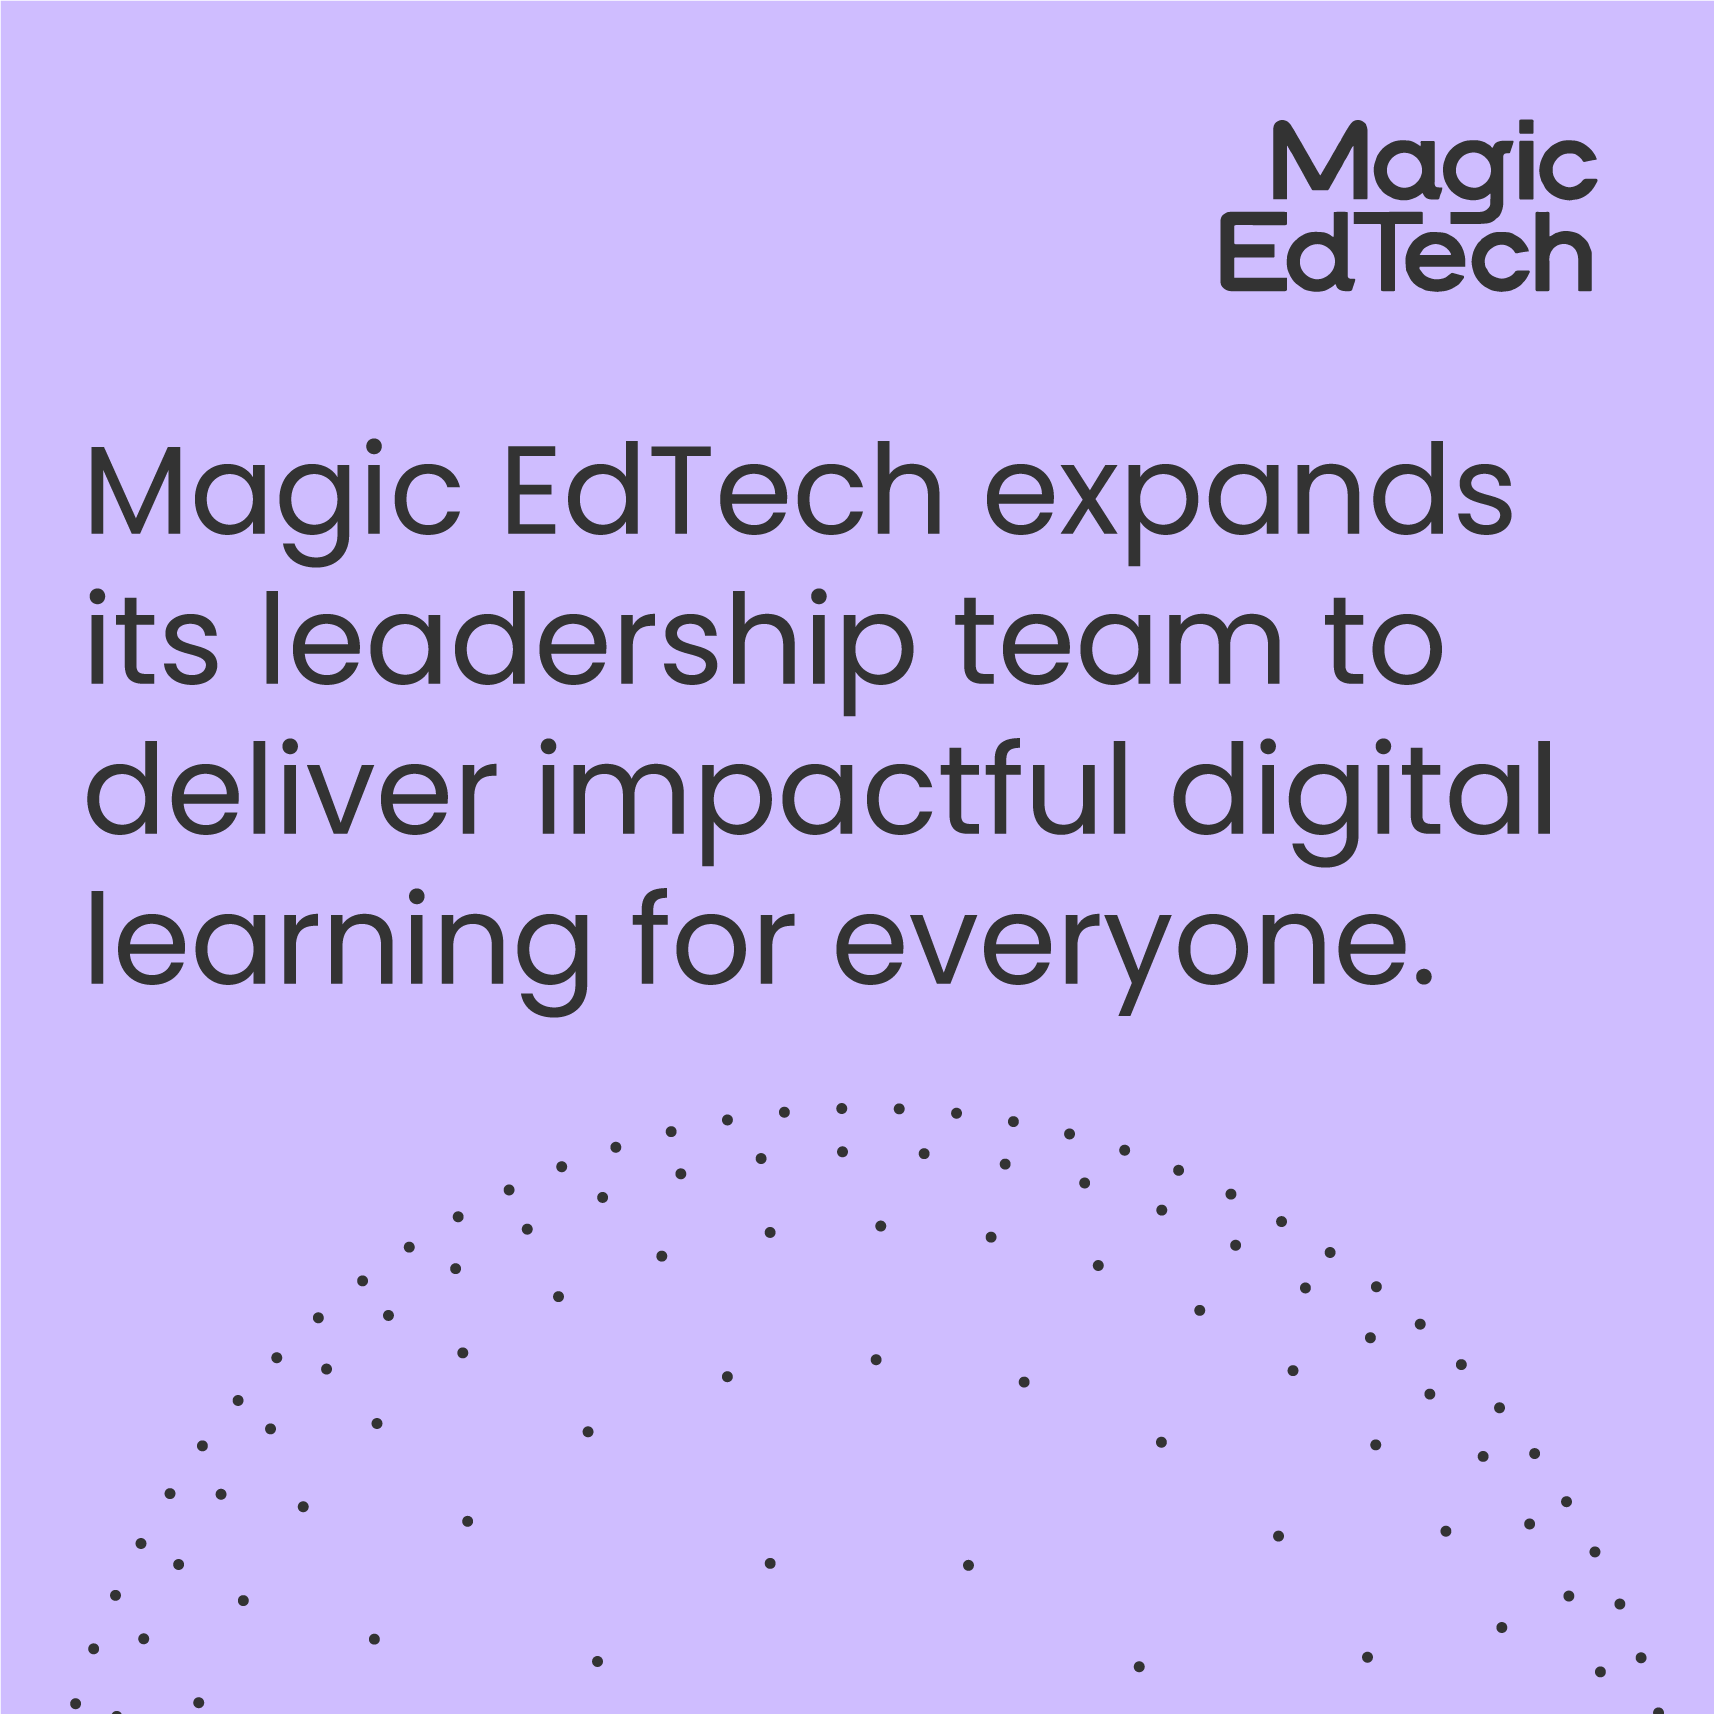 Magic EdTech expands its leadership team to deliver impactful digital learning for everyone